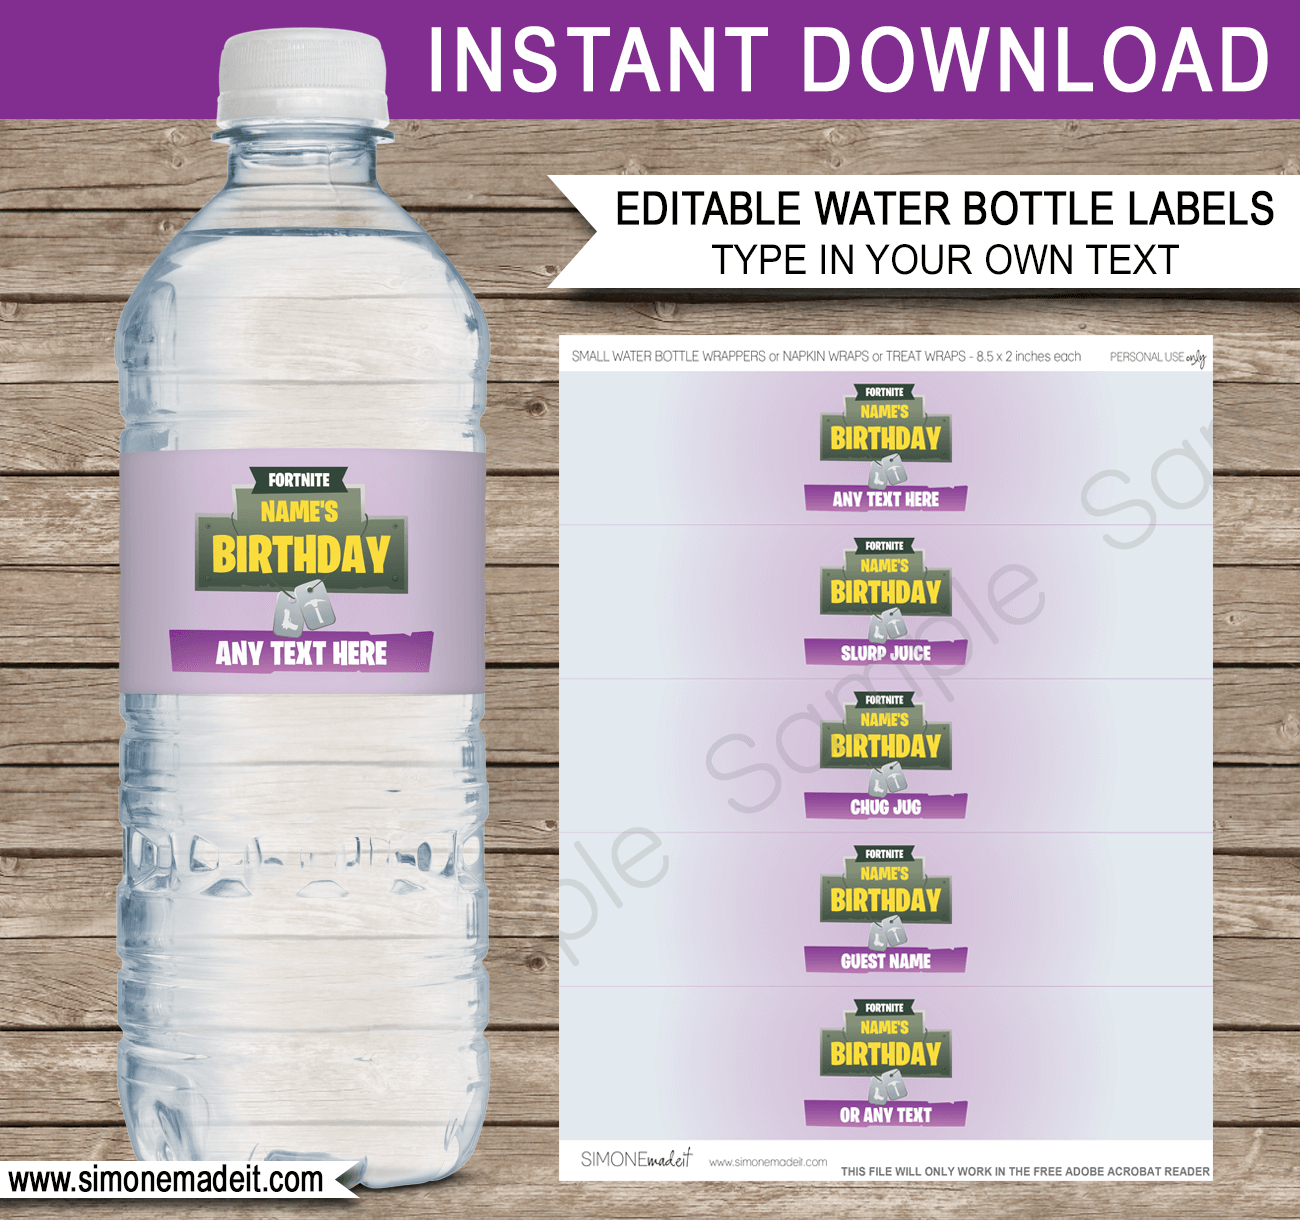 Fortnite Water Bottle Labels Template | Fortnite Birthday Party - Free Printable Water Bottle Labels For Birthday